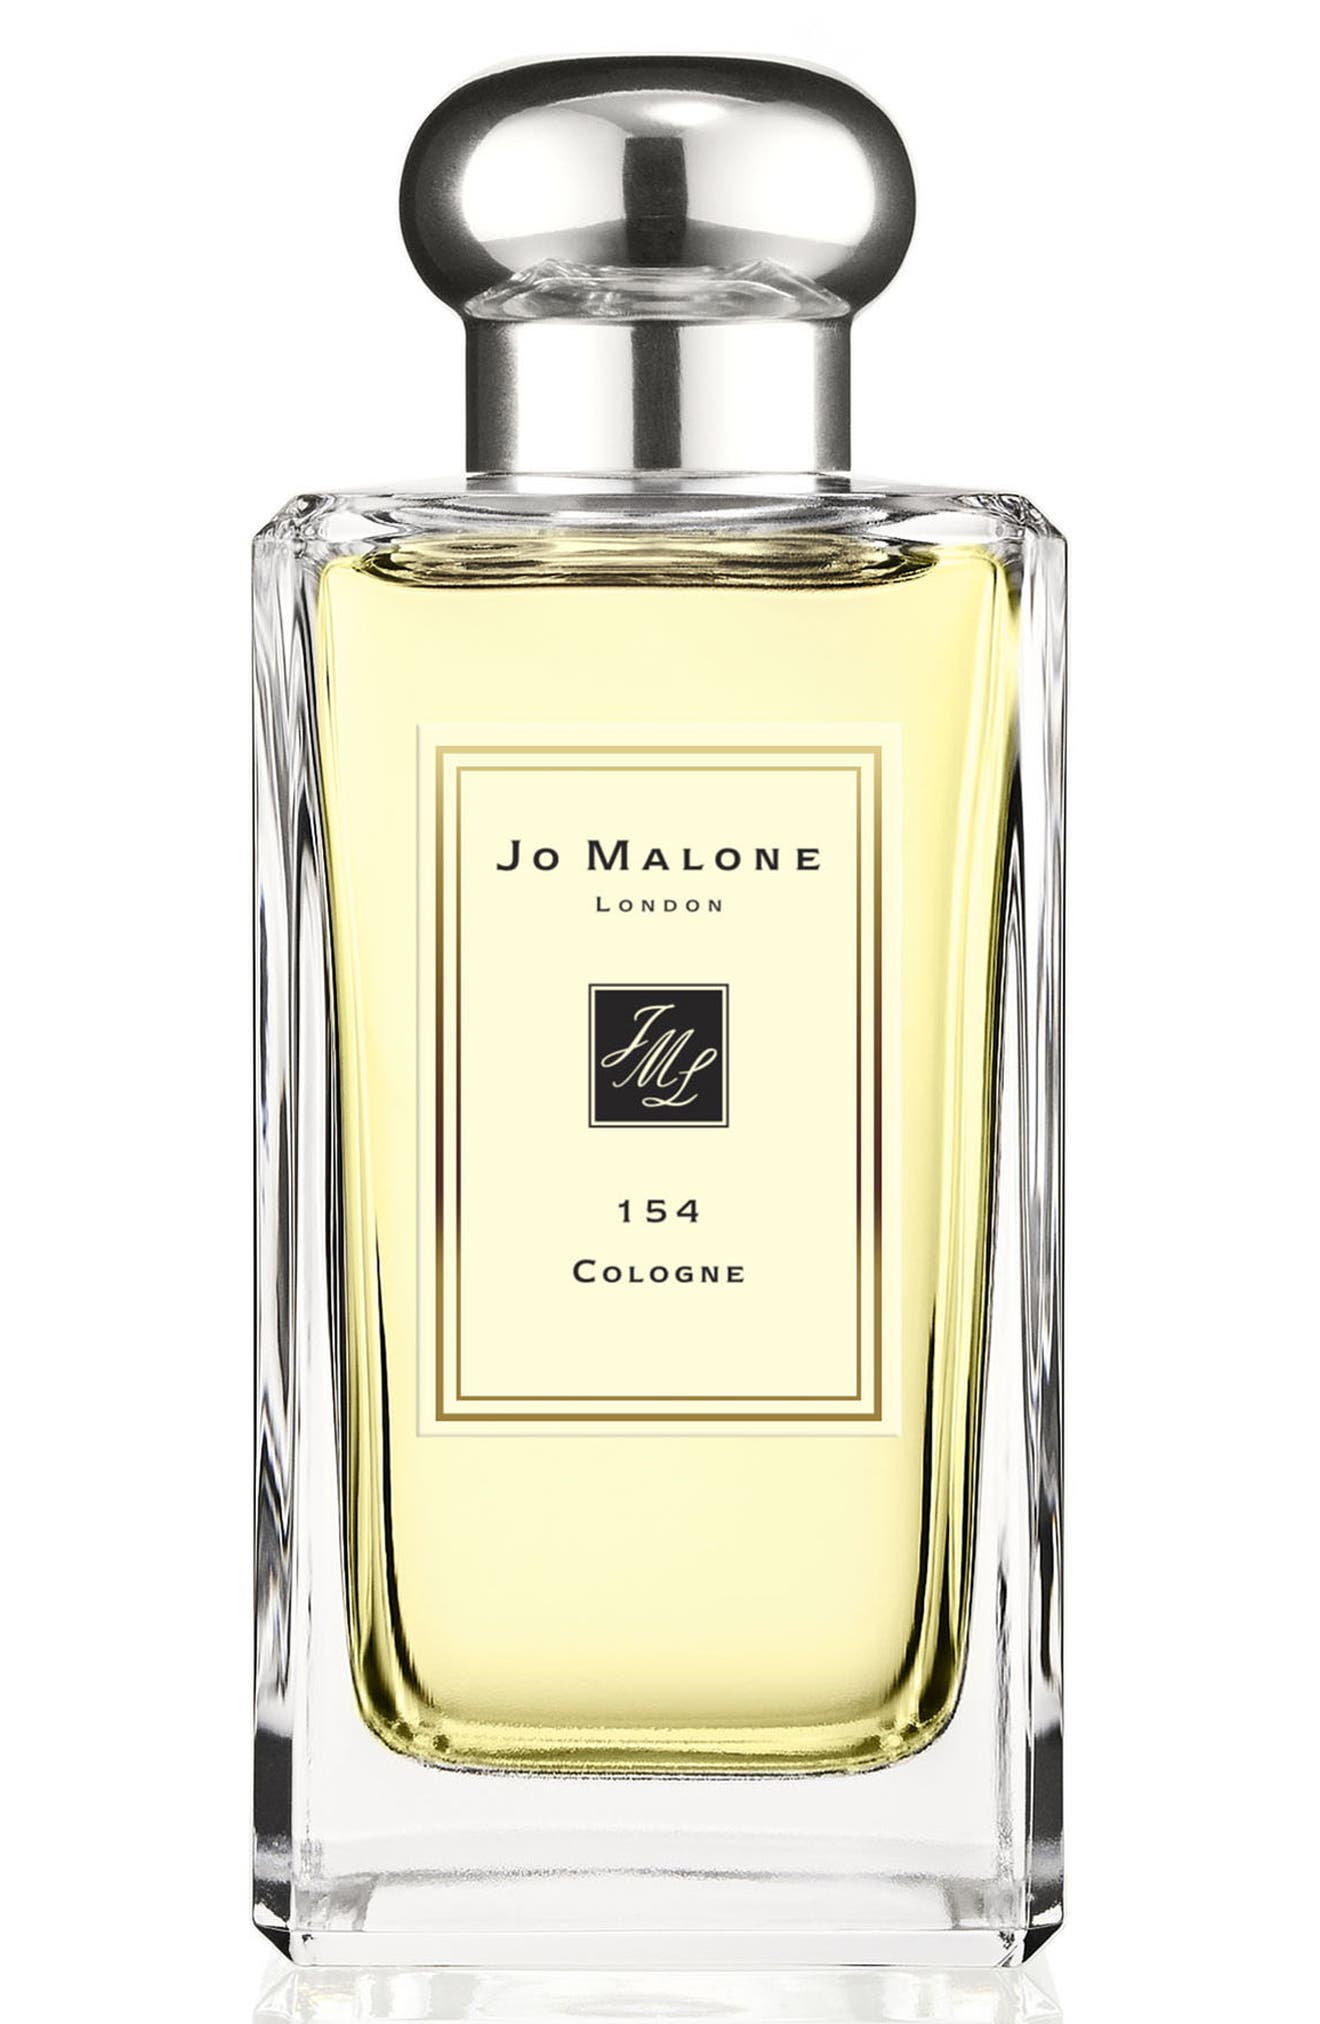 Jo Malone London™ 154 Cologne (3.4 oz.)